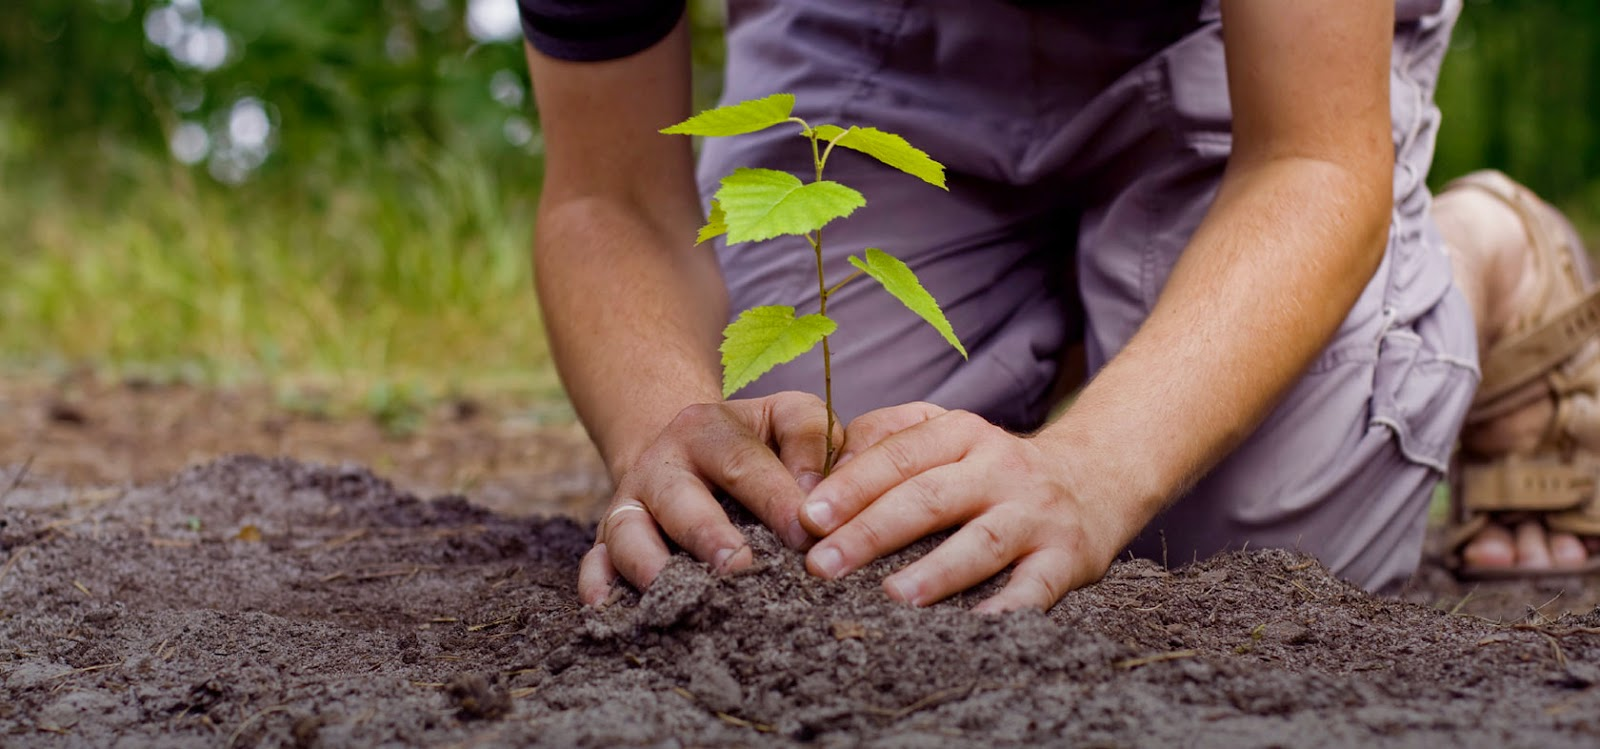 planting tree by hand